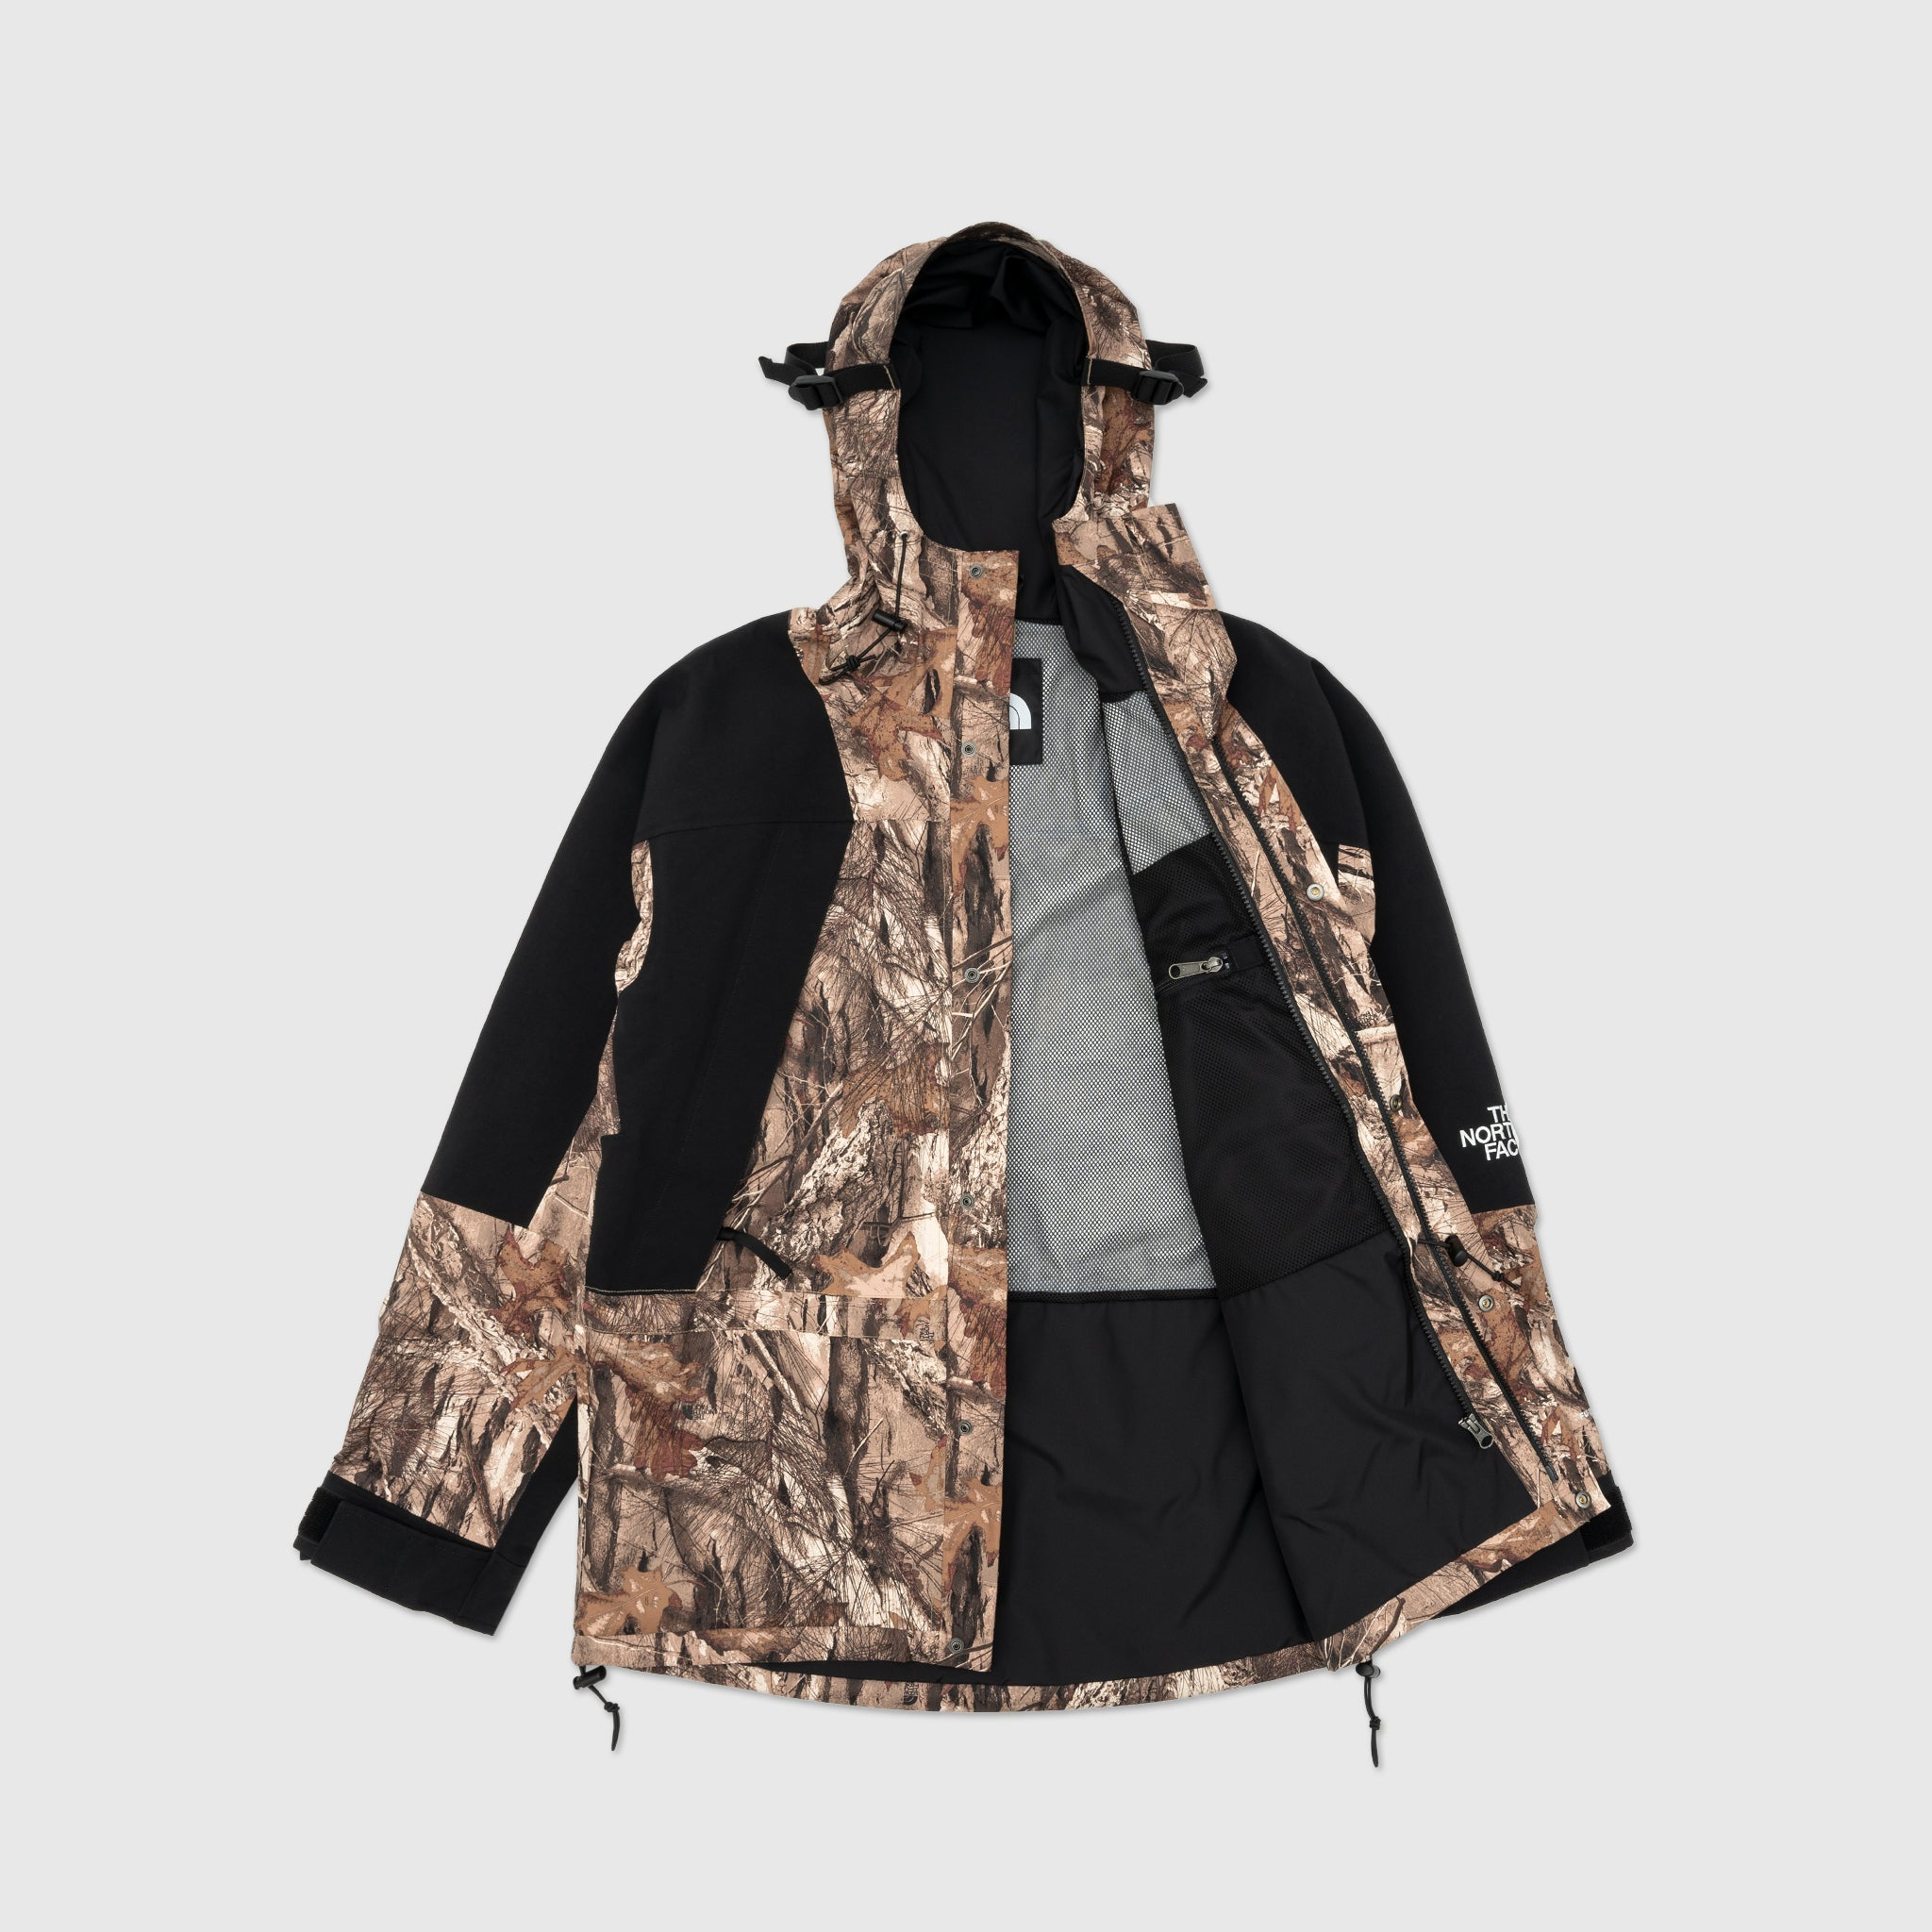 THE NORTH FACE 94' RETRO MOUNTAIN LIGHT FUTURELIGHT JACKET